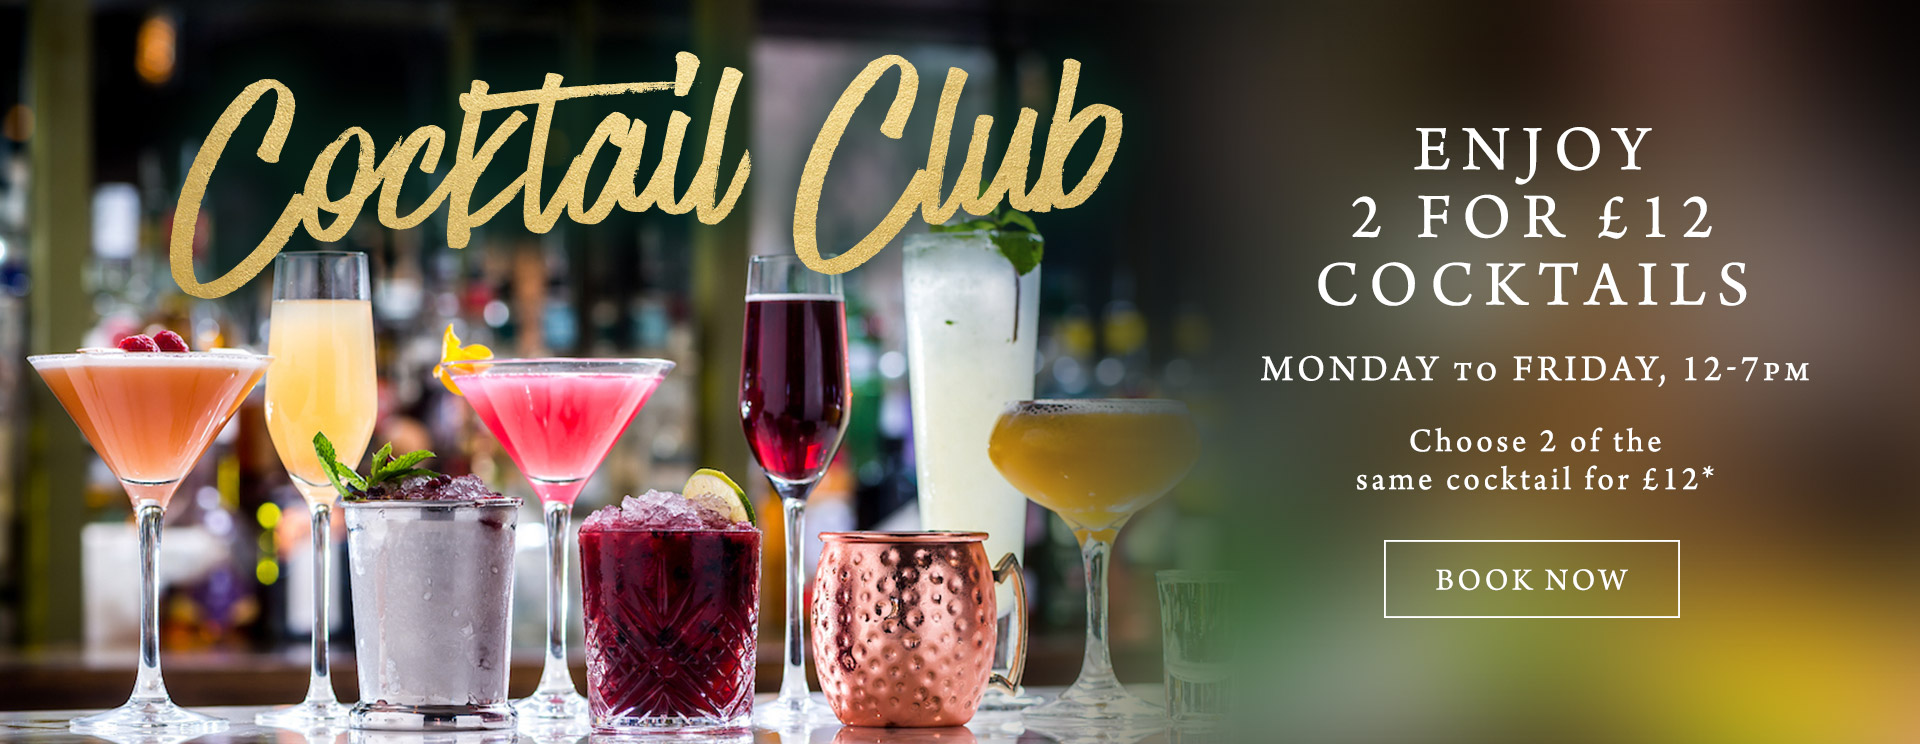 2 for £12 cocktails at The Albany